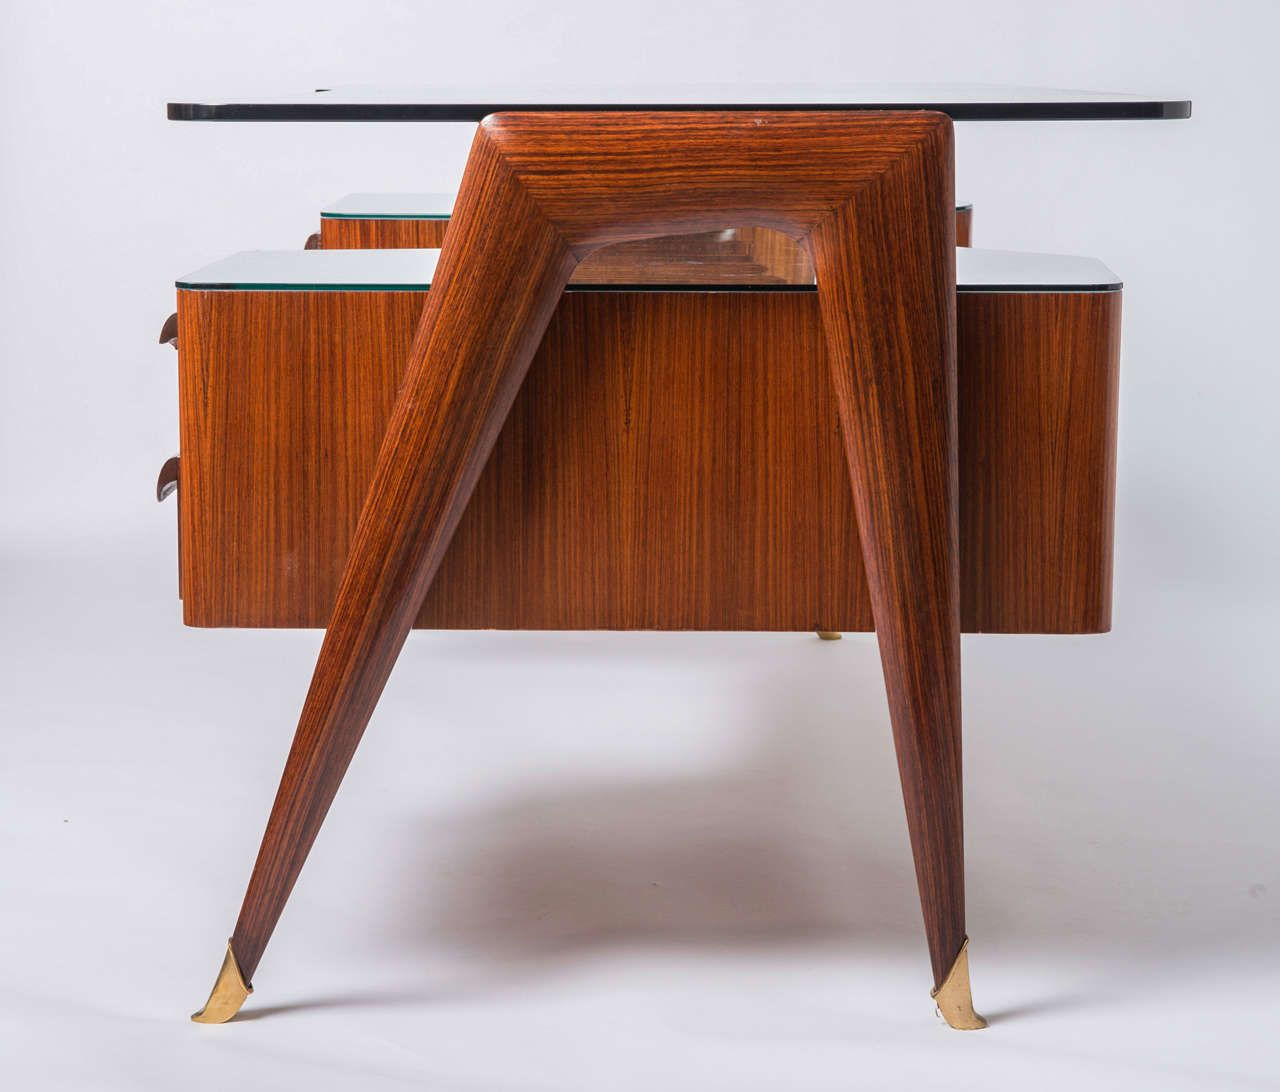 Paolo Buffa Style Indian Rosewood And Glass Desk, Italy Circa 1950